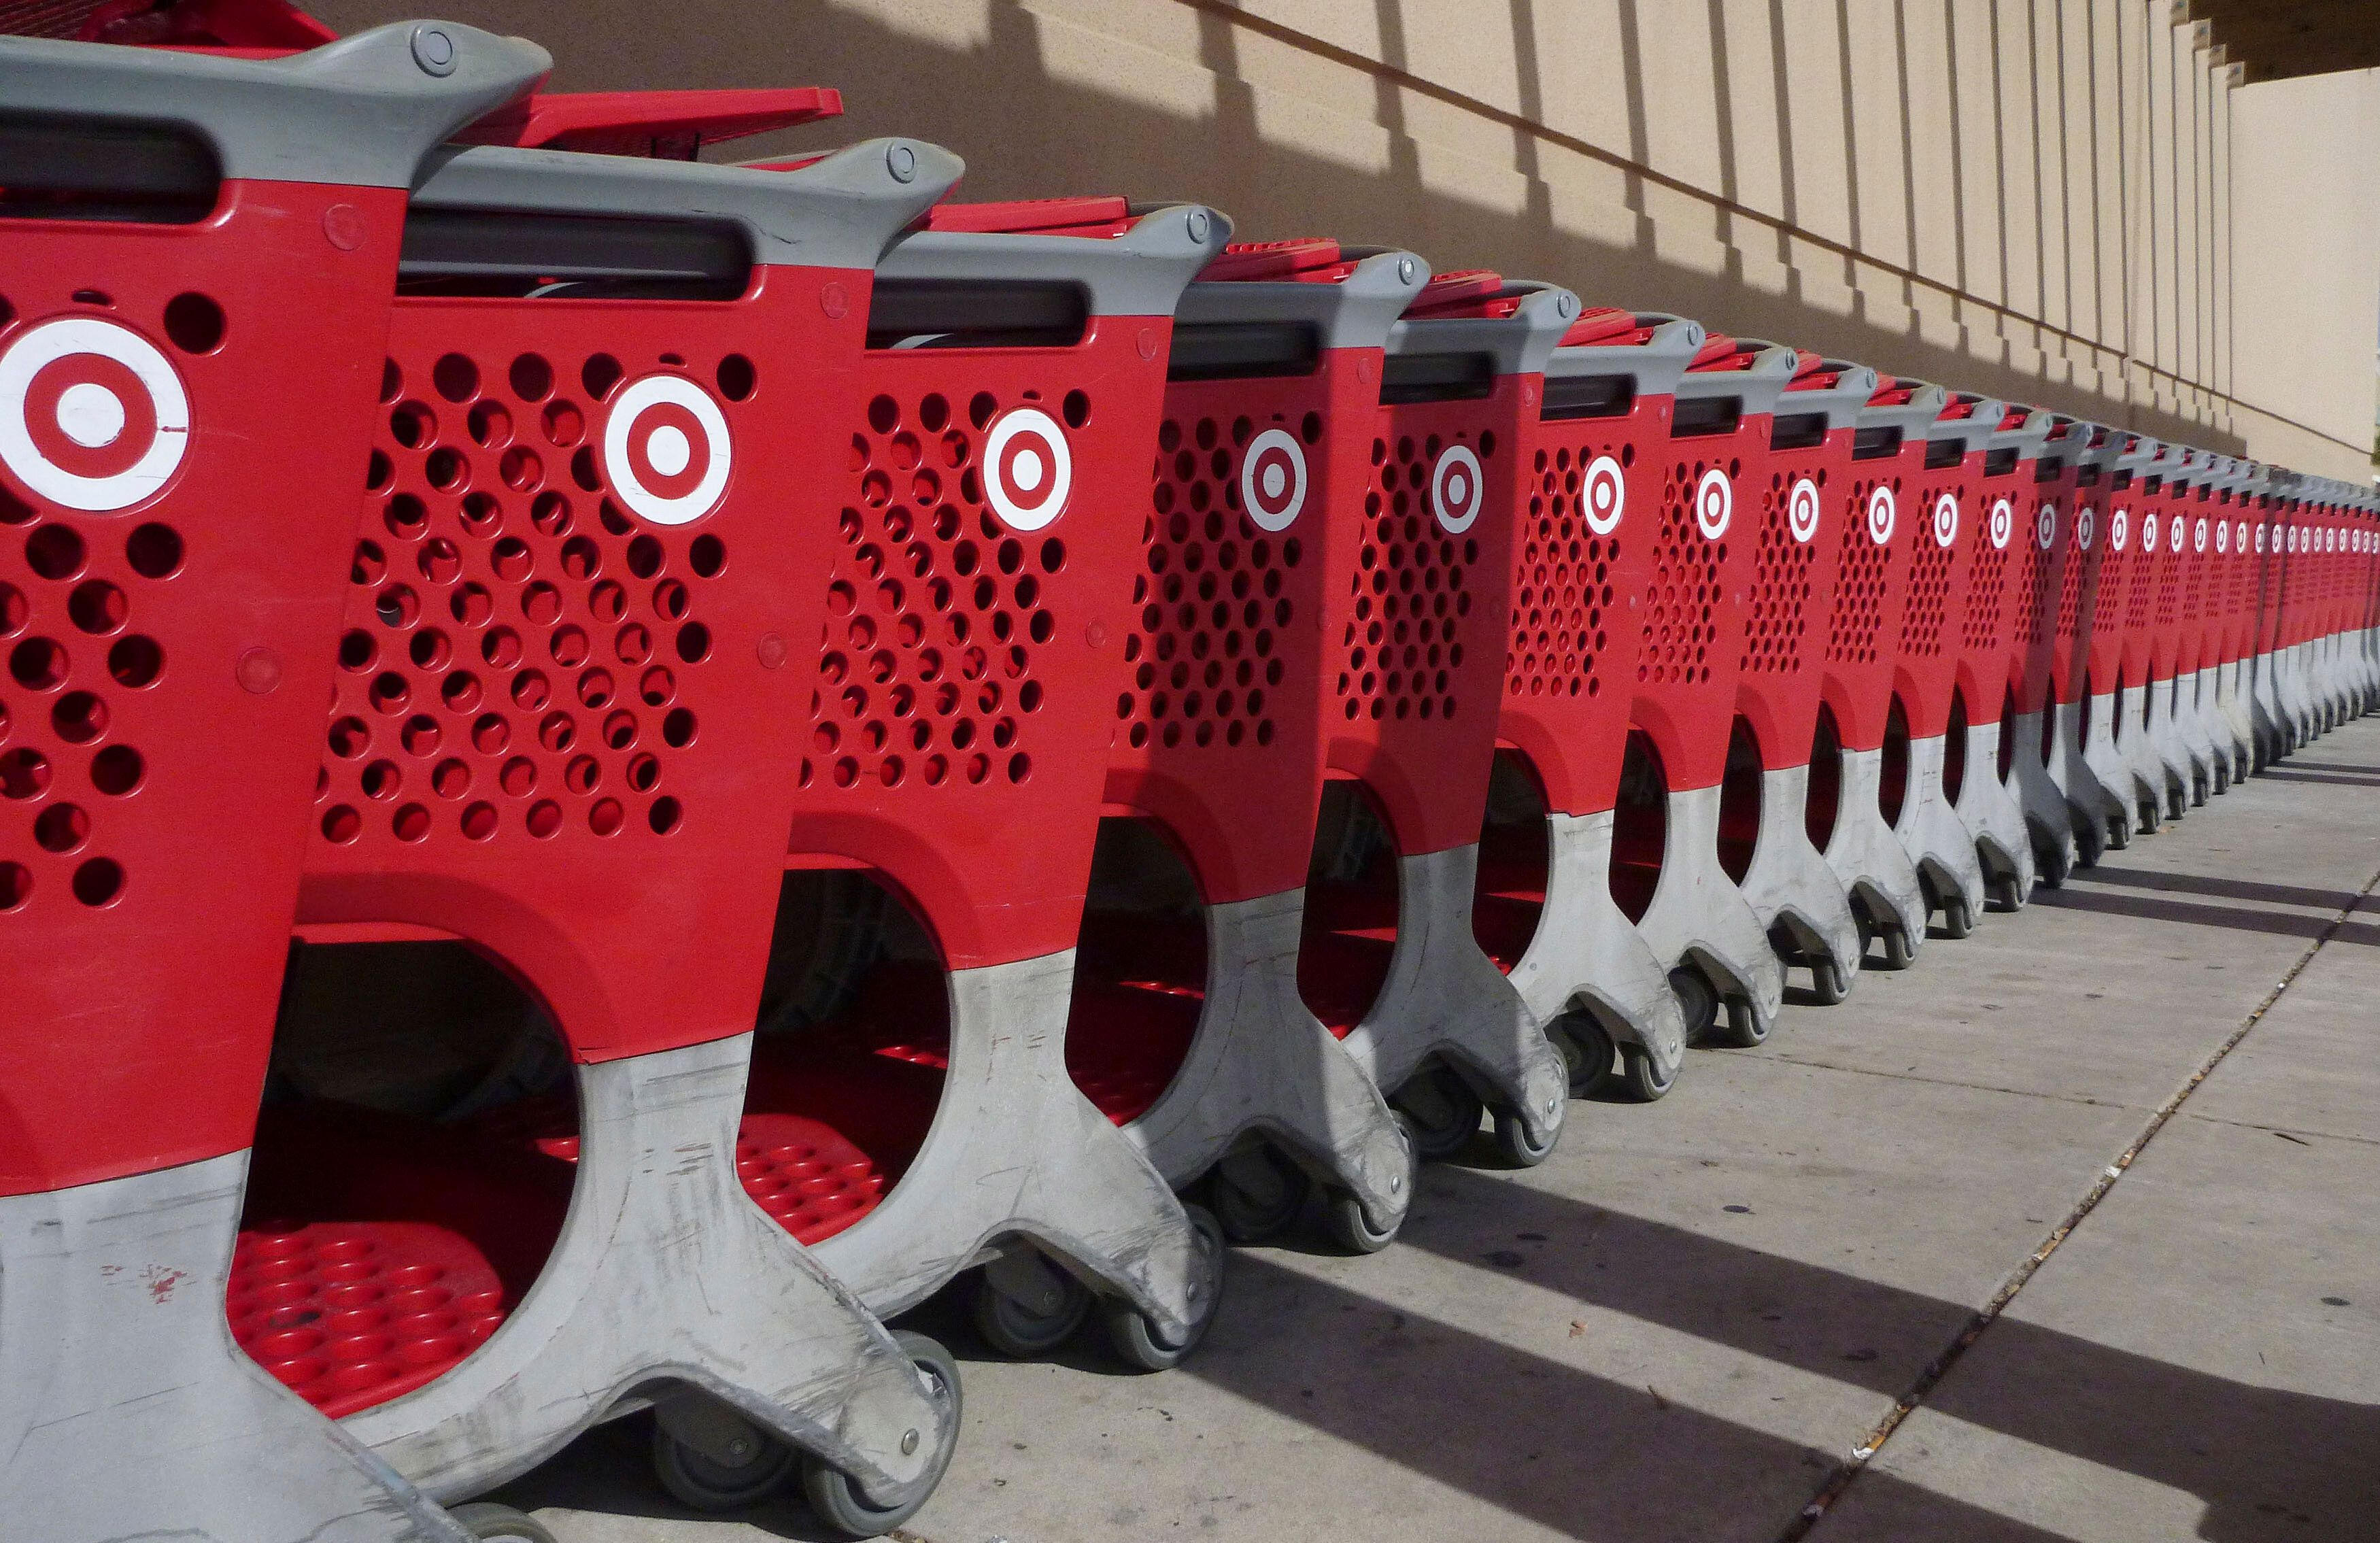 Target Black Friday Deals 2020: Everything You Need To Know